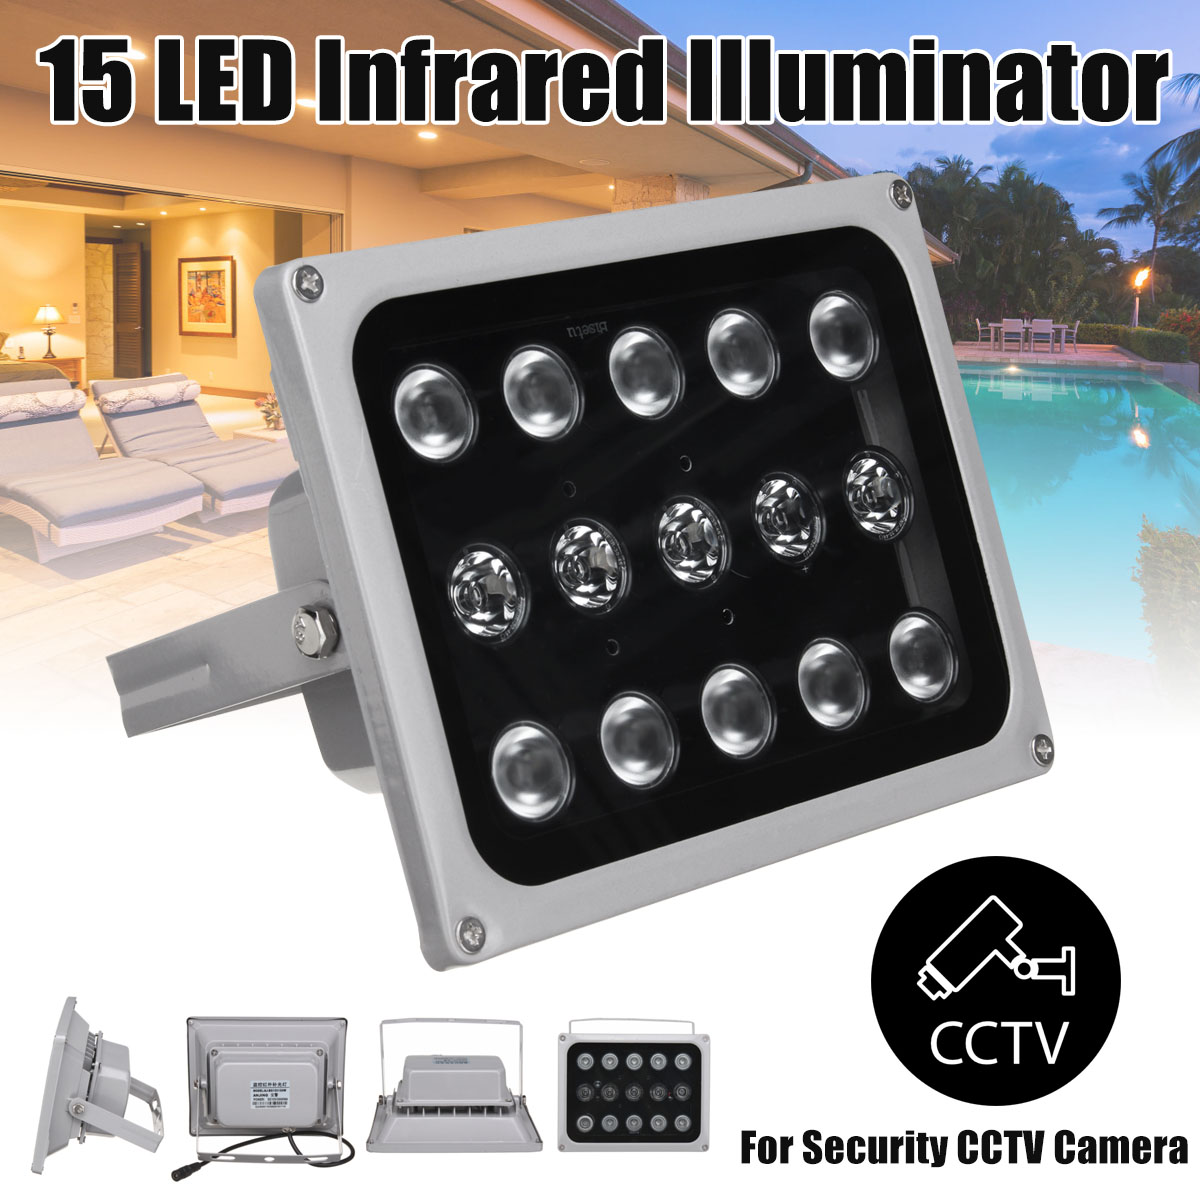 12V Infrared Light Lamp 15 LED Night Vision Metal Waterproof Fill Light For Outdoor CCTV Security Accessories